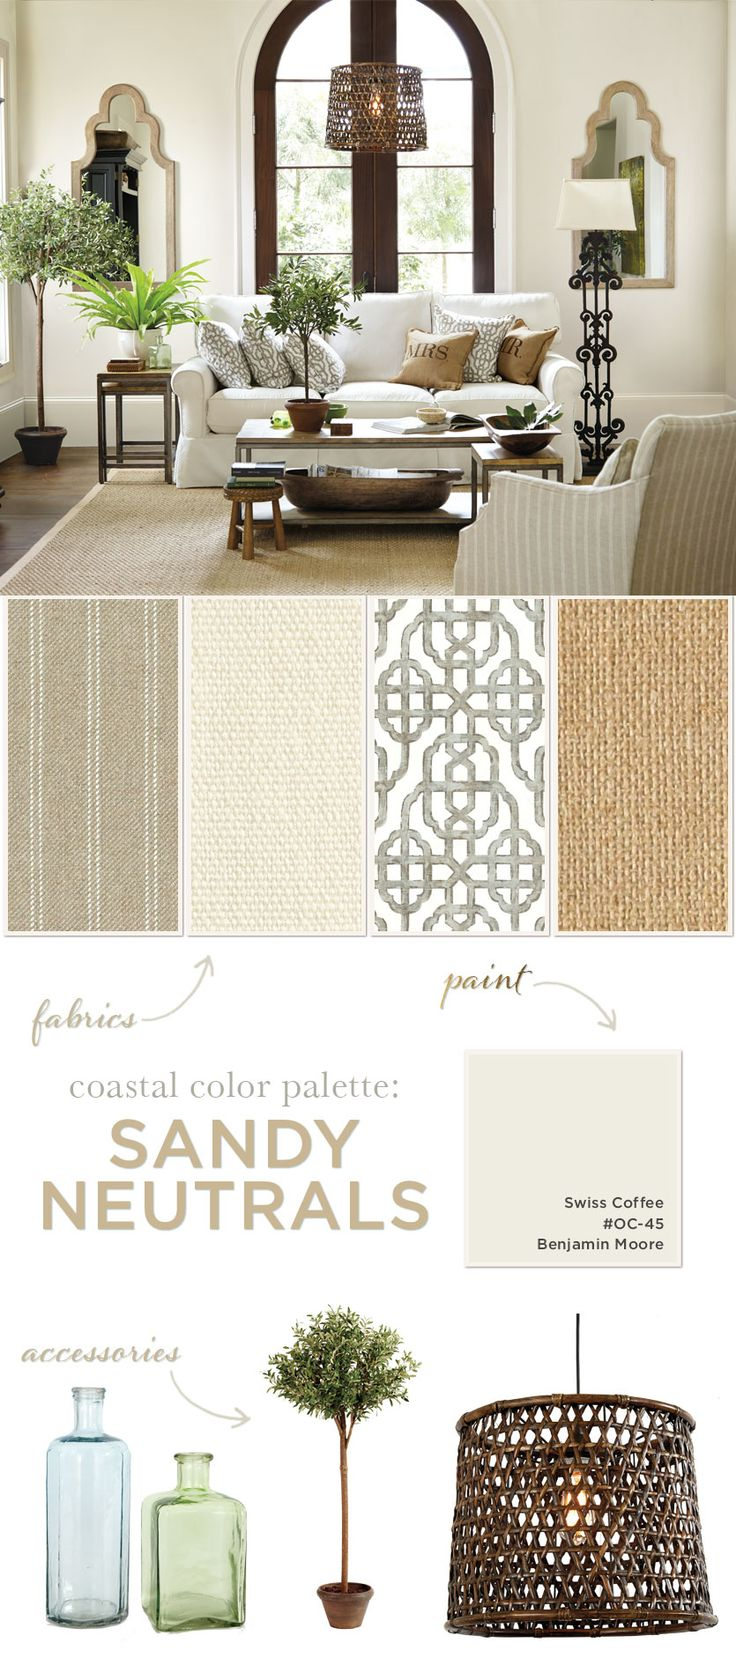 Coastal Color Palette: Sandy Neutrals  - Benjamin Moore Swiss Coffee